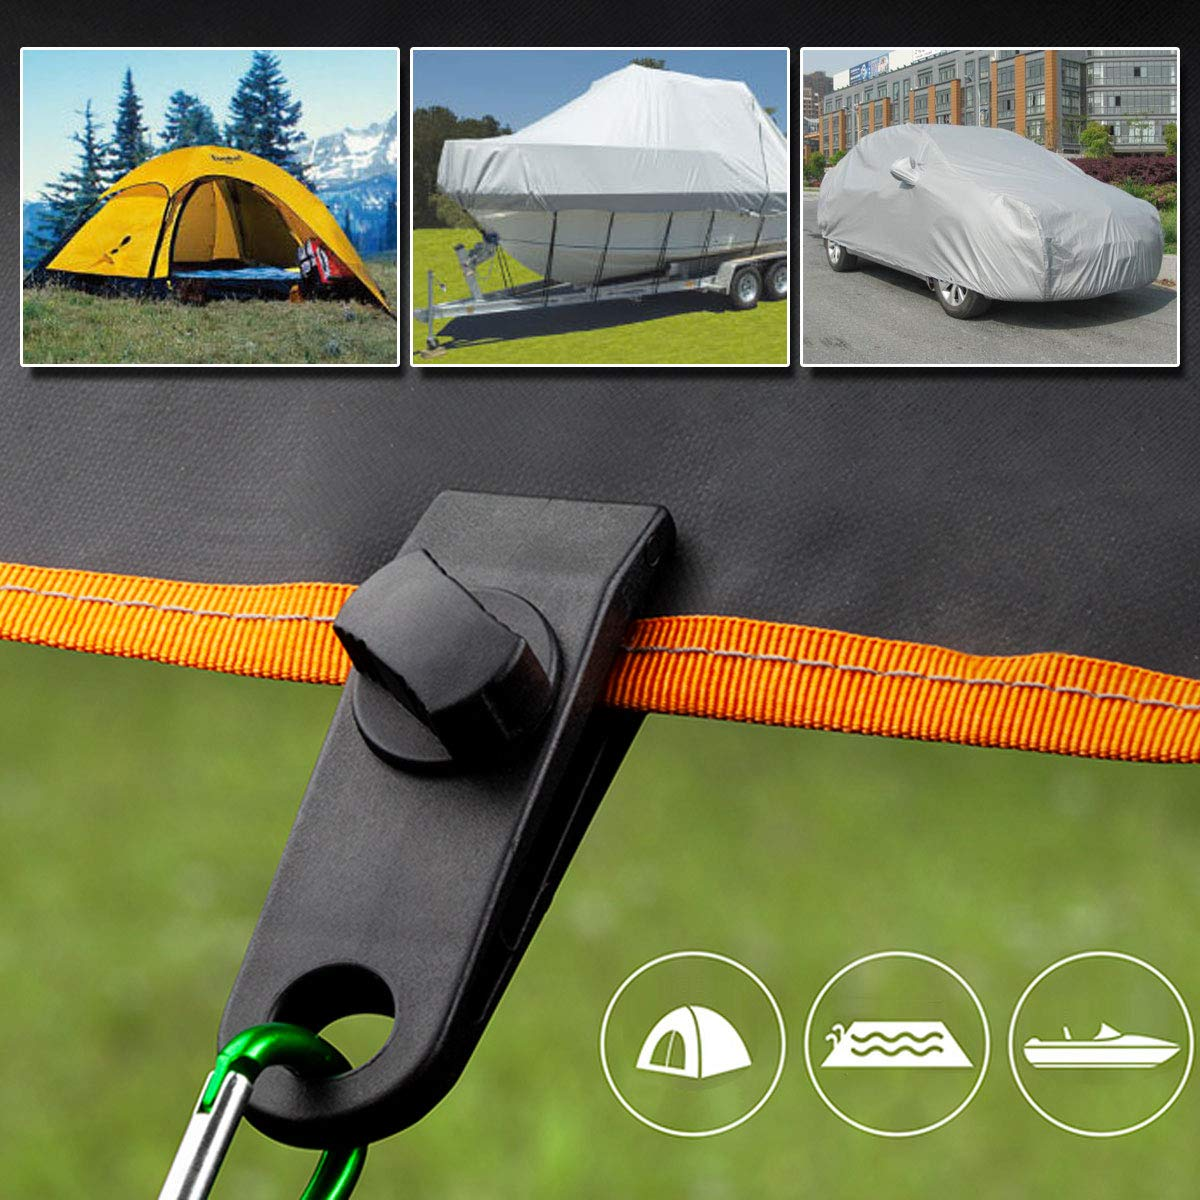 Black LIOOBO 10pcs Tent Clips Tarp Clamp Clips Heavy Duty Awning Clamp for Camping Farming